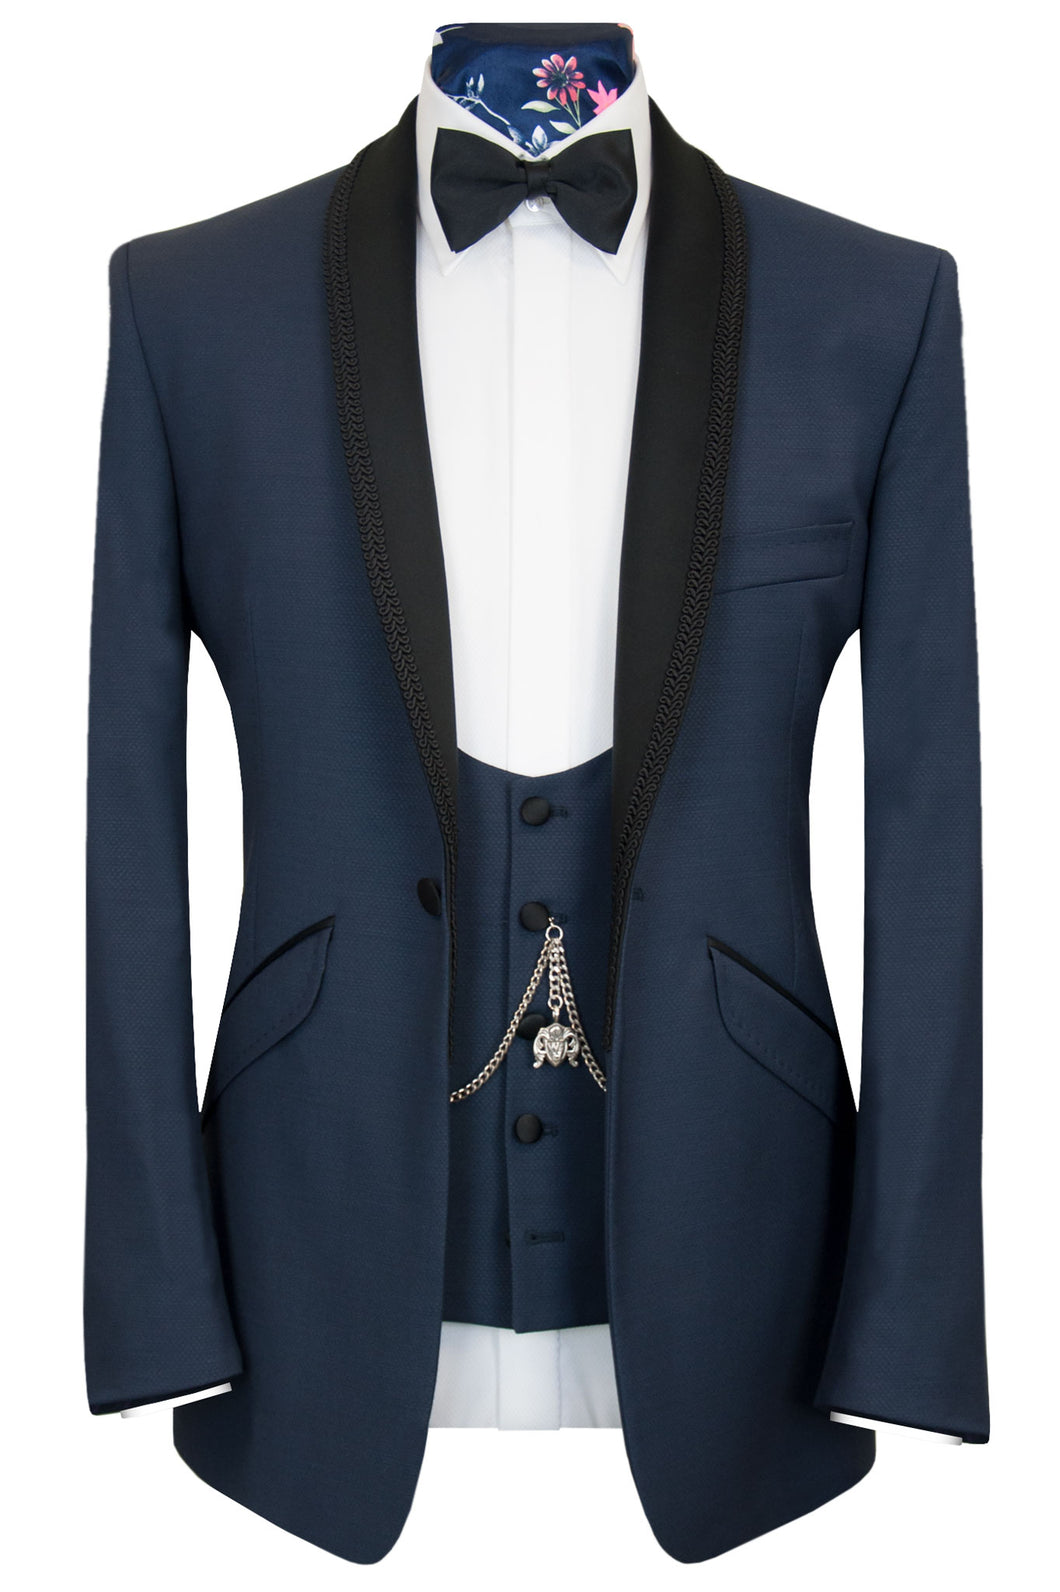 The Everleigh Navy Dinner Suit